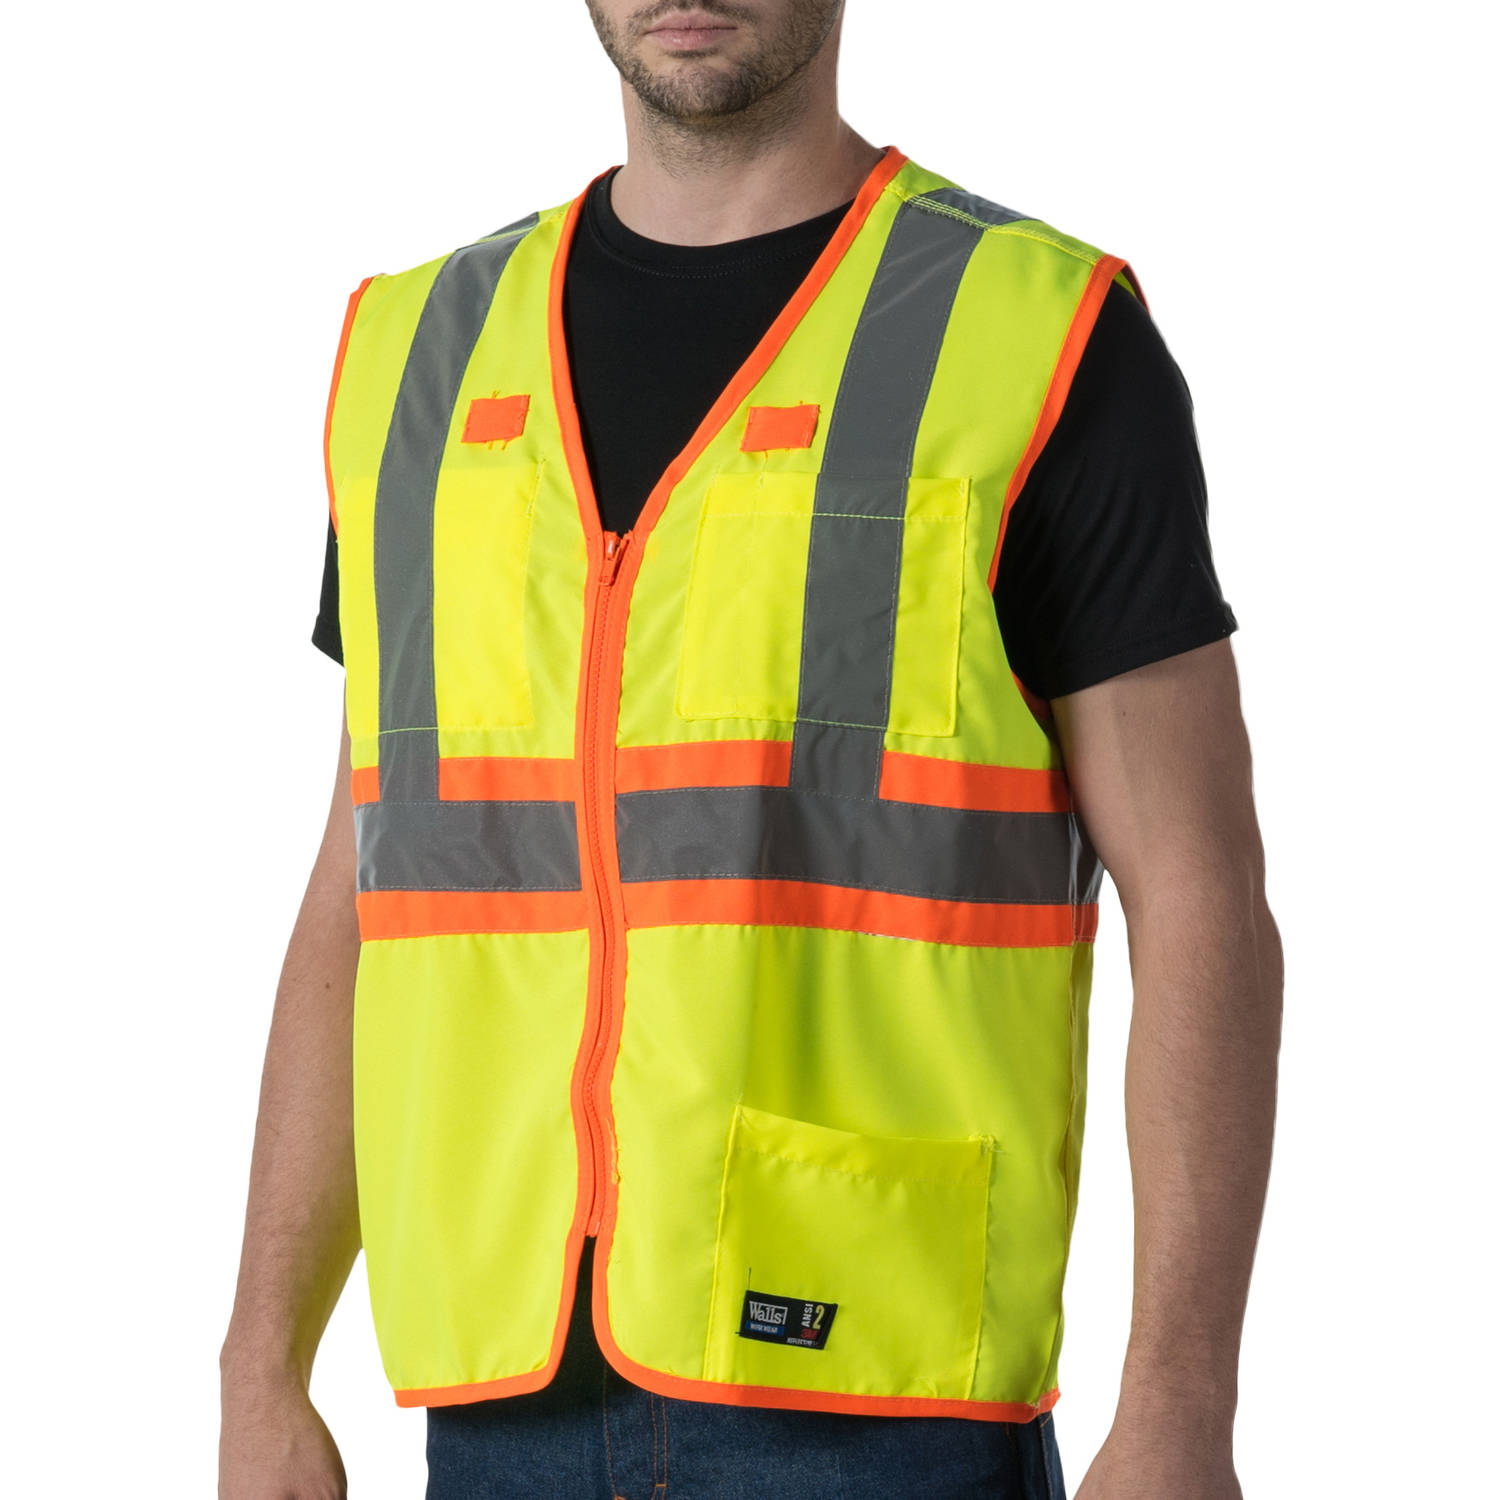 Walls - Men's Premium ANSI 2 High Visibility Safety Vest